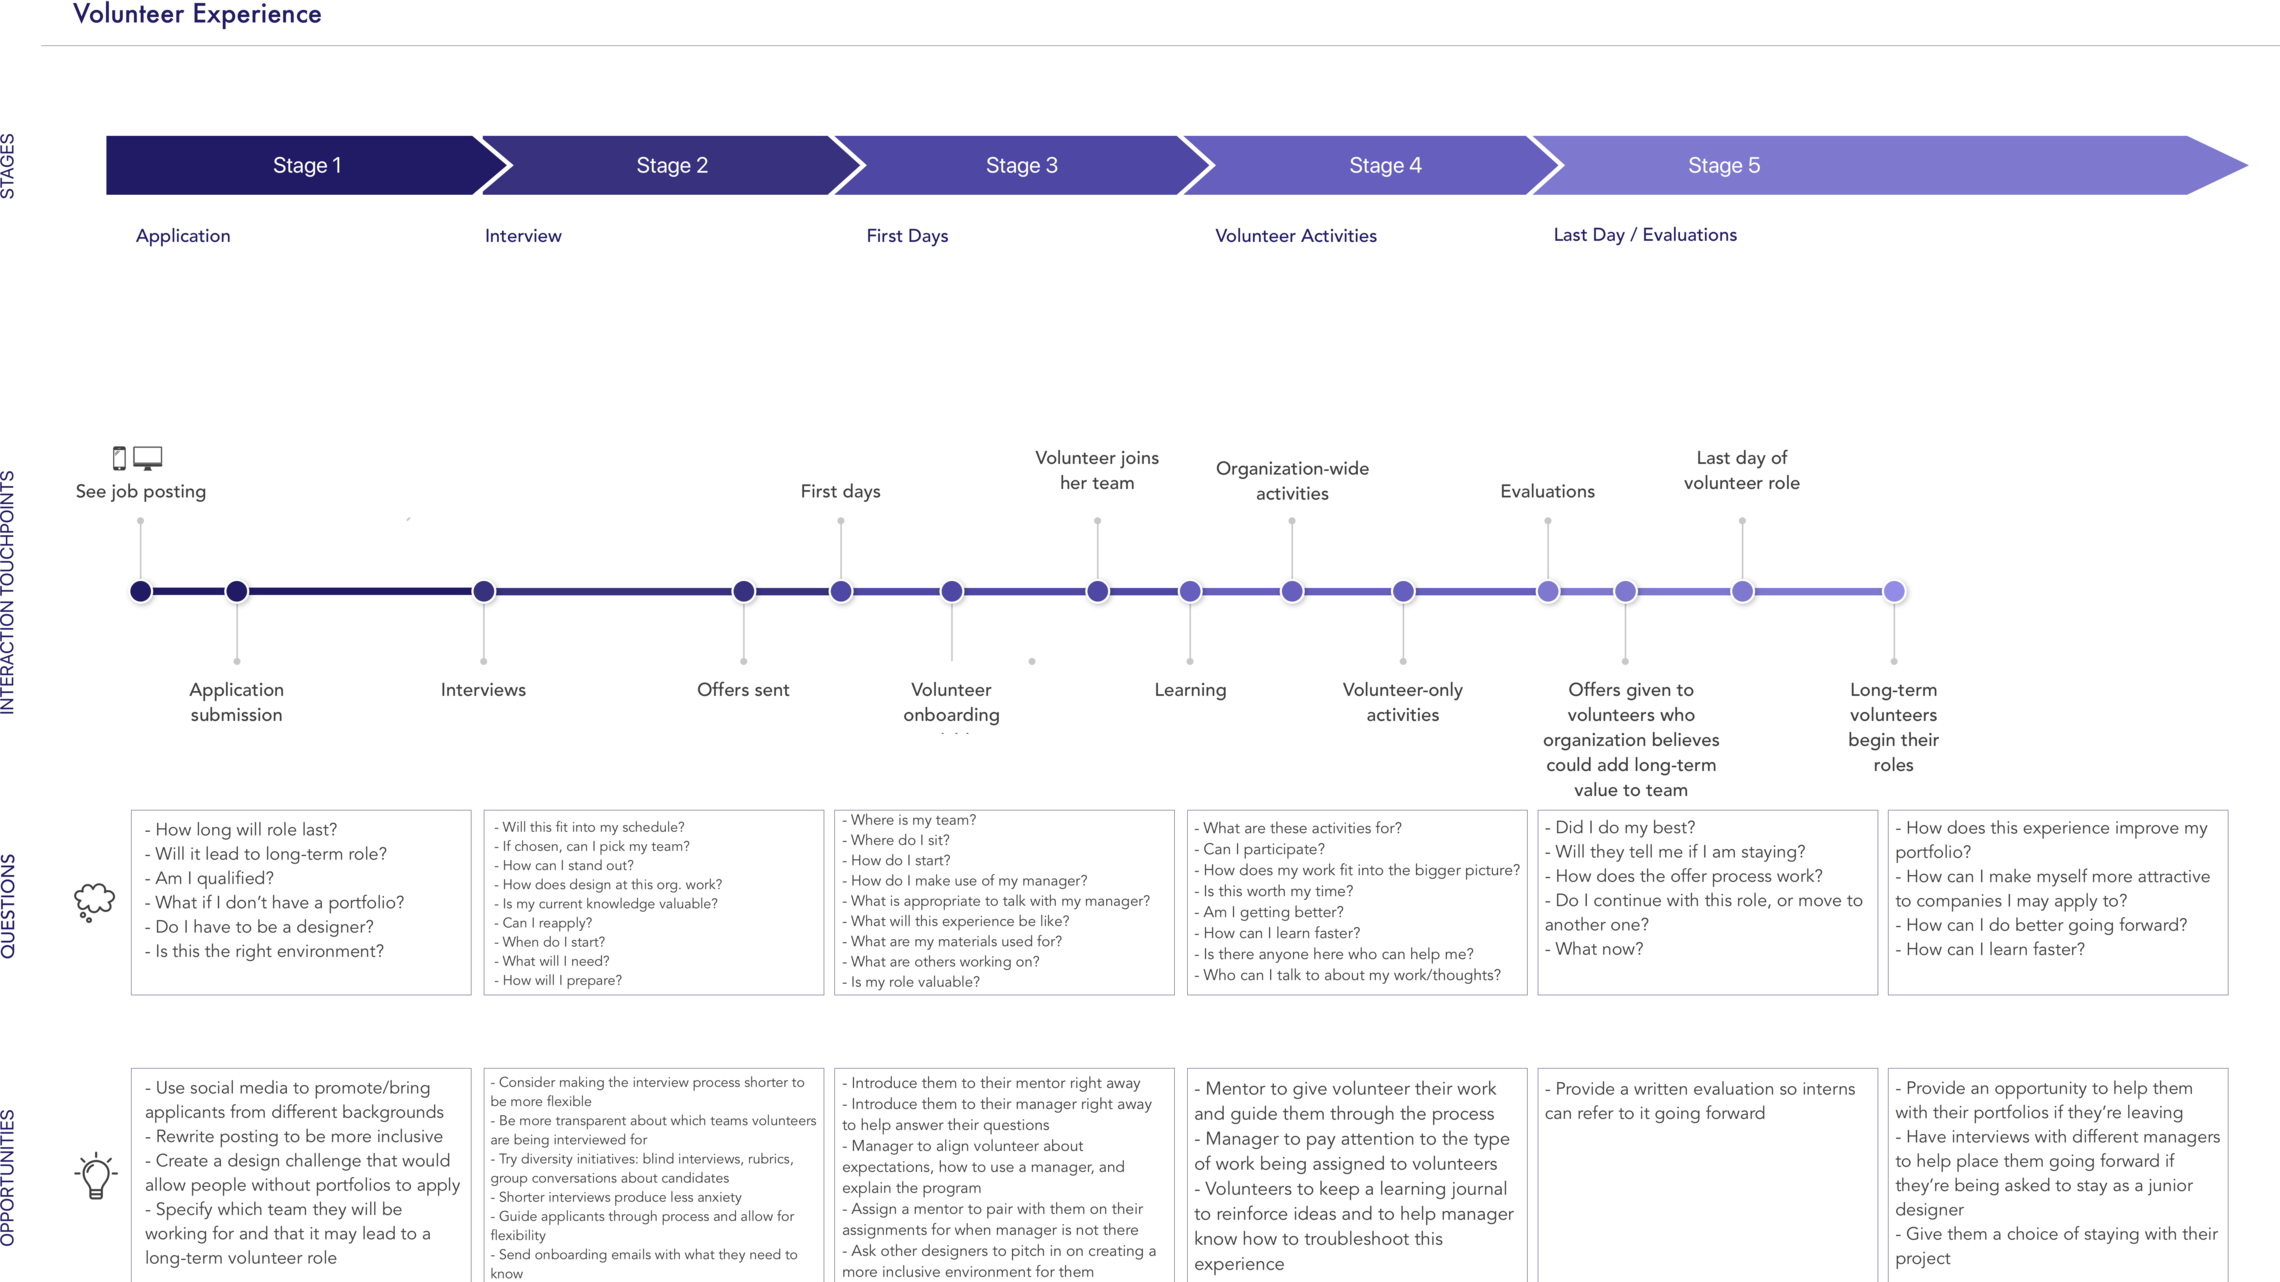 An experience map helped me identify opportunities for improvement.